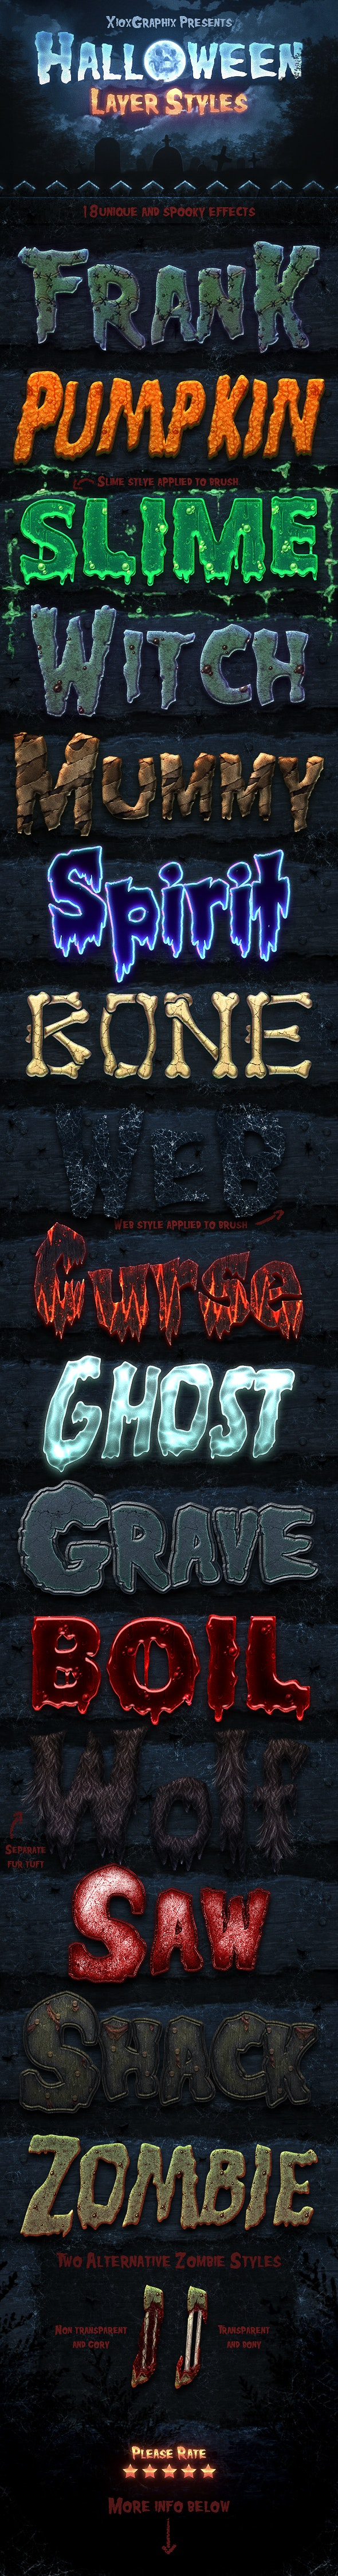 Halloween Layer Styles - Text Effects Styles